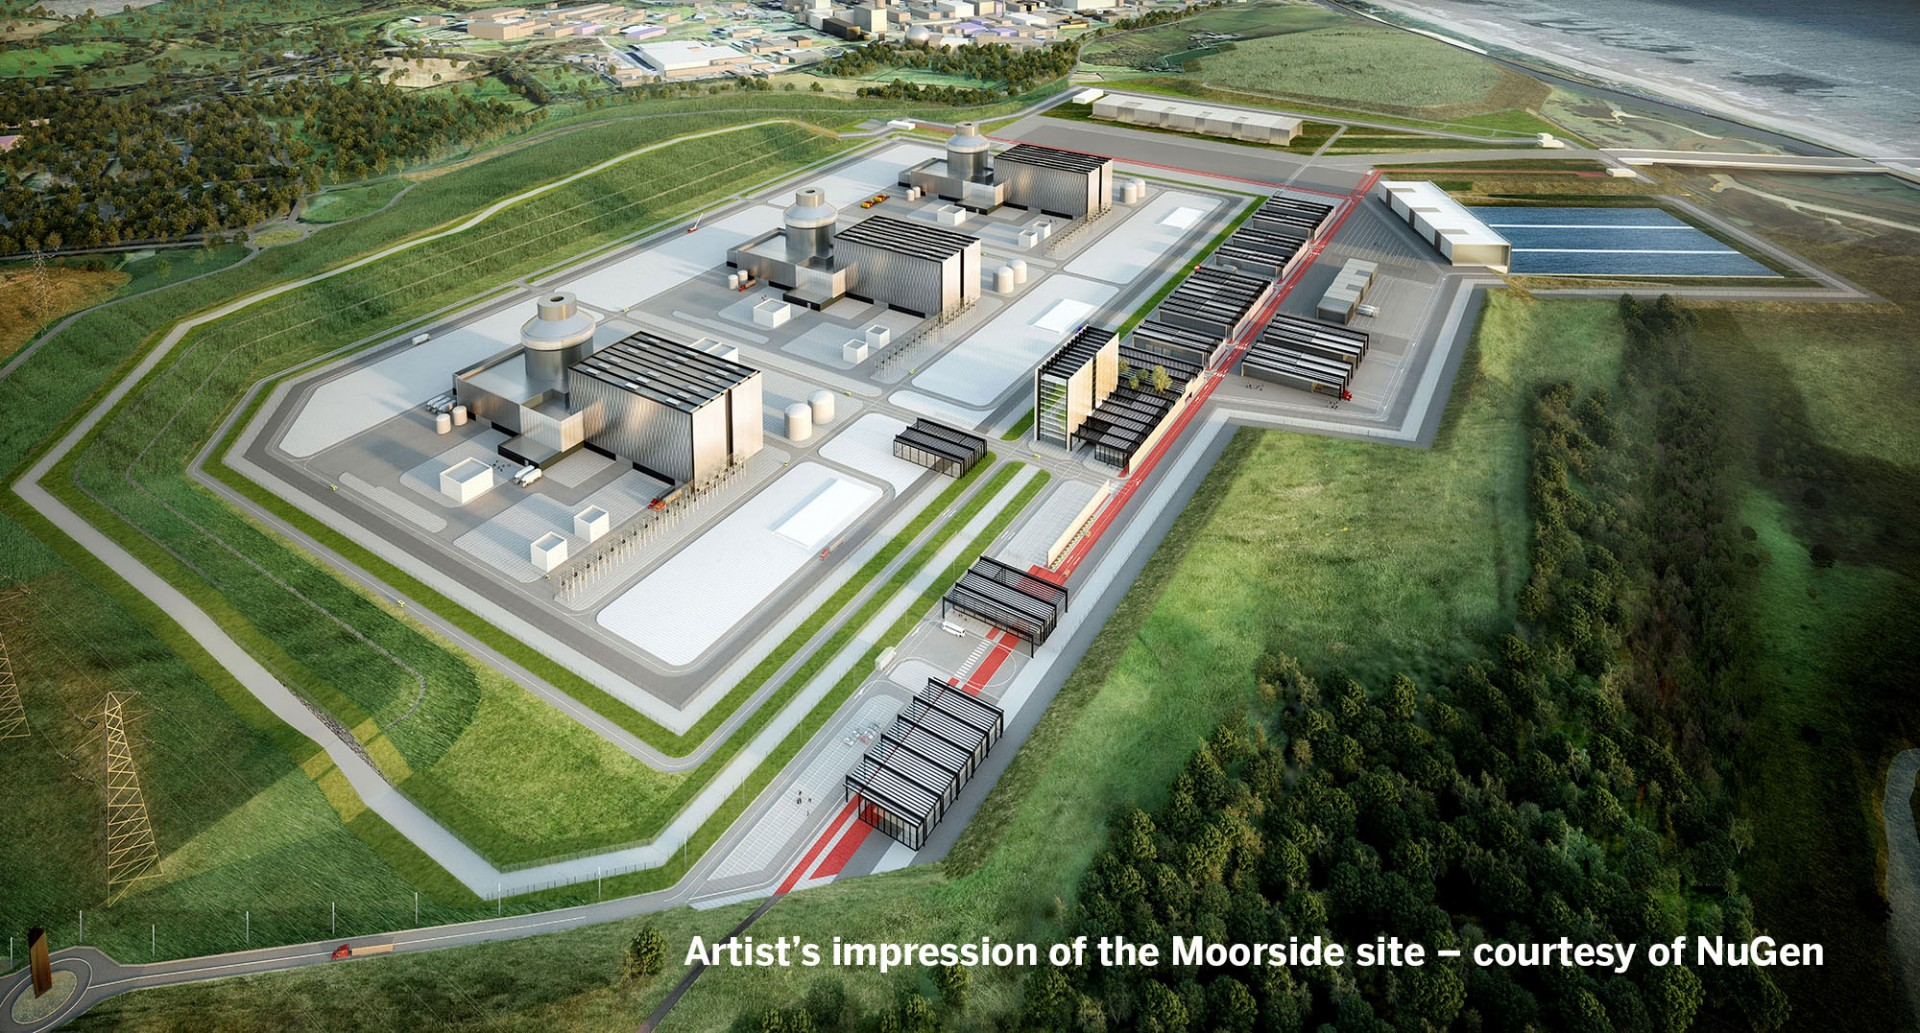 Artist's impression of the Moorside site, courtesy of NuGen